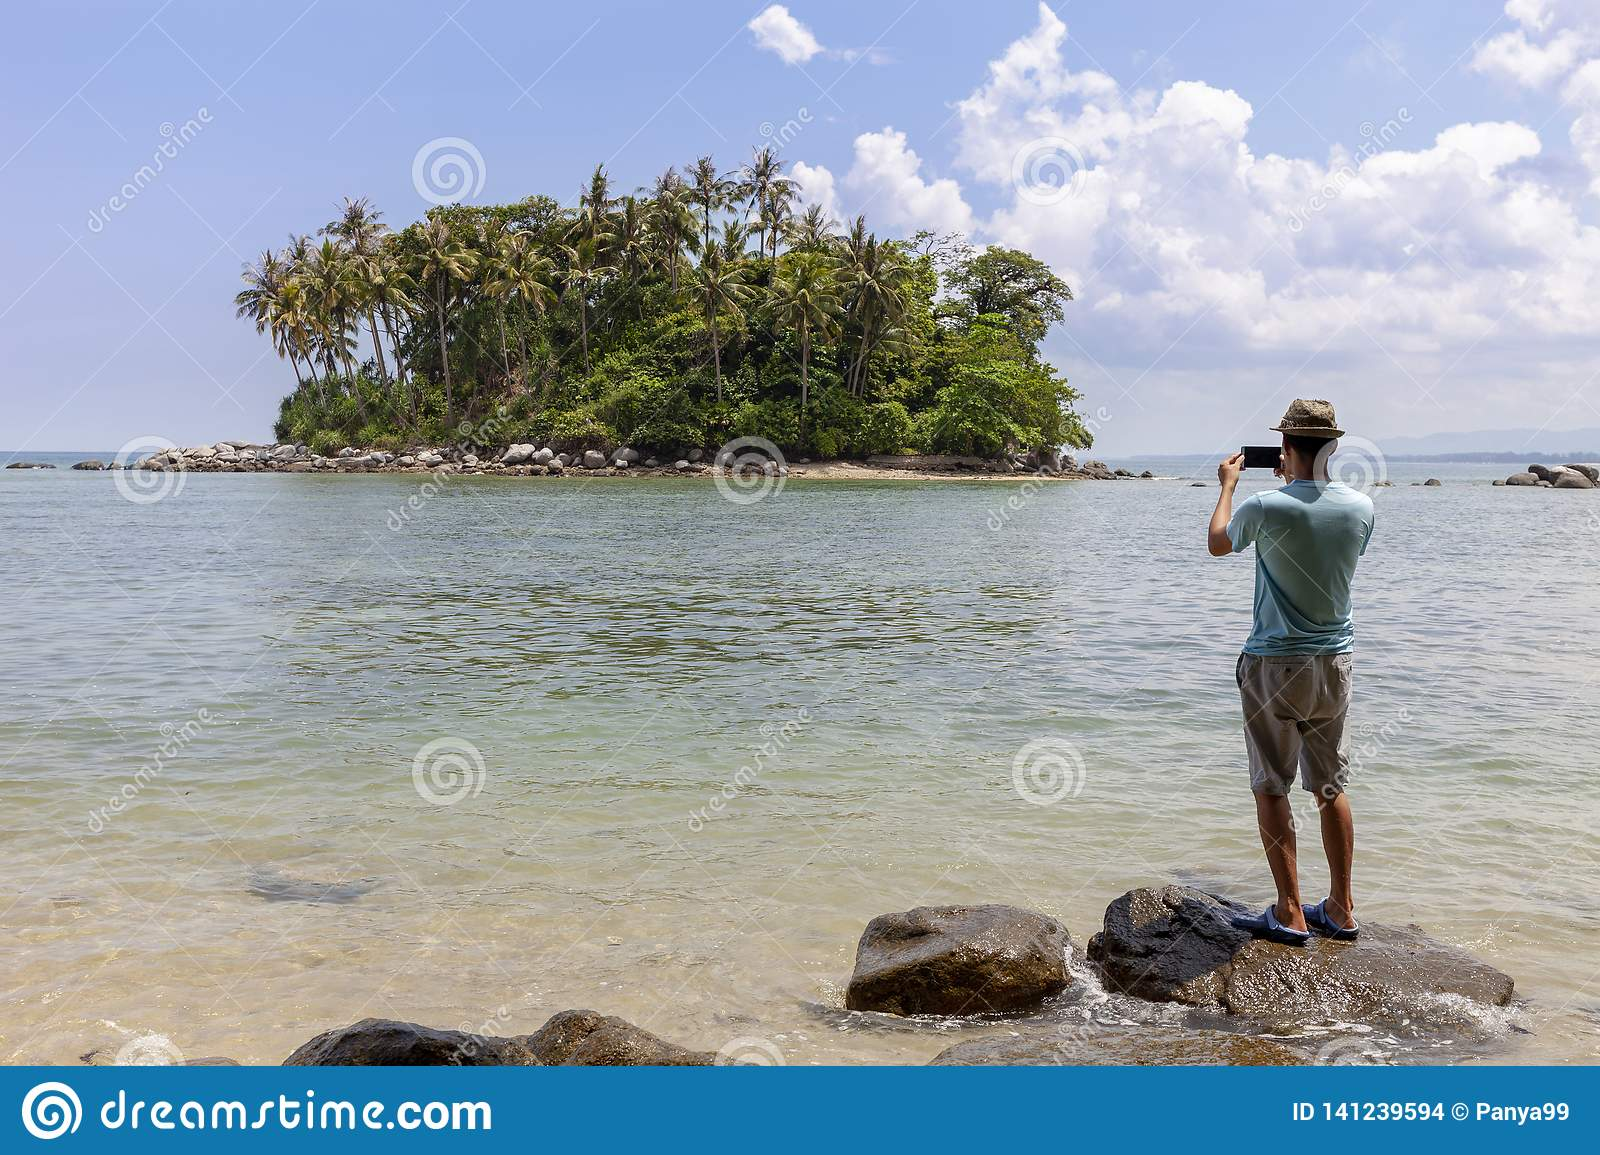 Tourist man standing on the stone in summer season and take a photo beautiful small island in phuket thailand